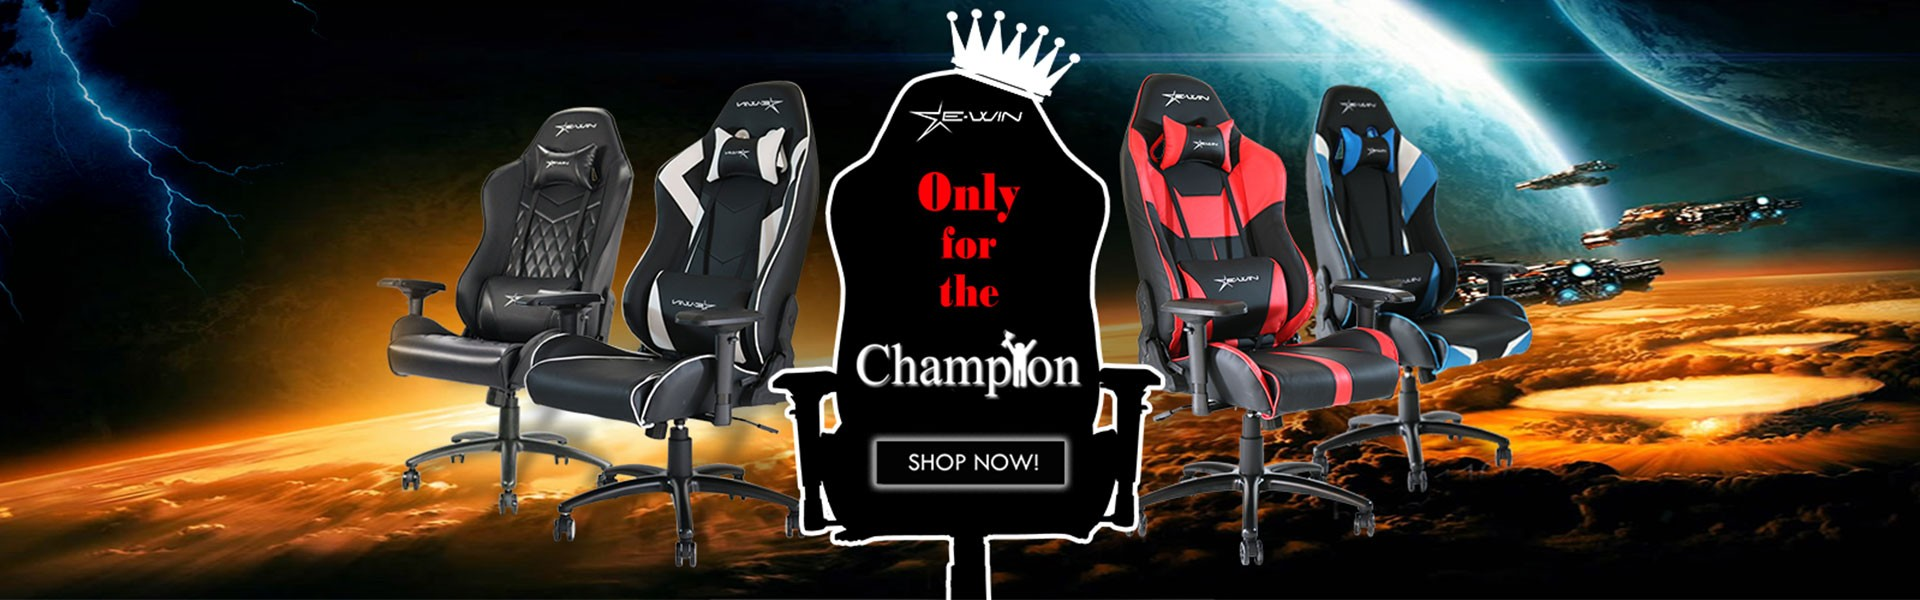 2018 EWIN Europe Champion Series Gaming Chairs !